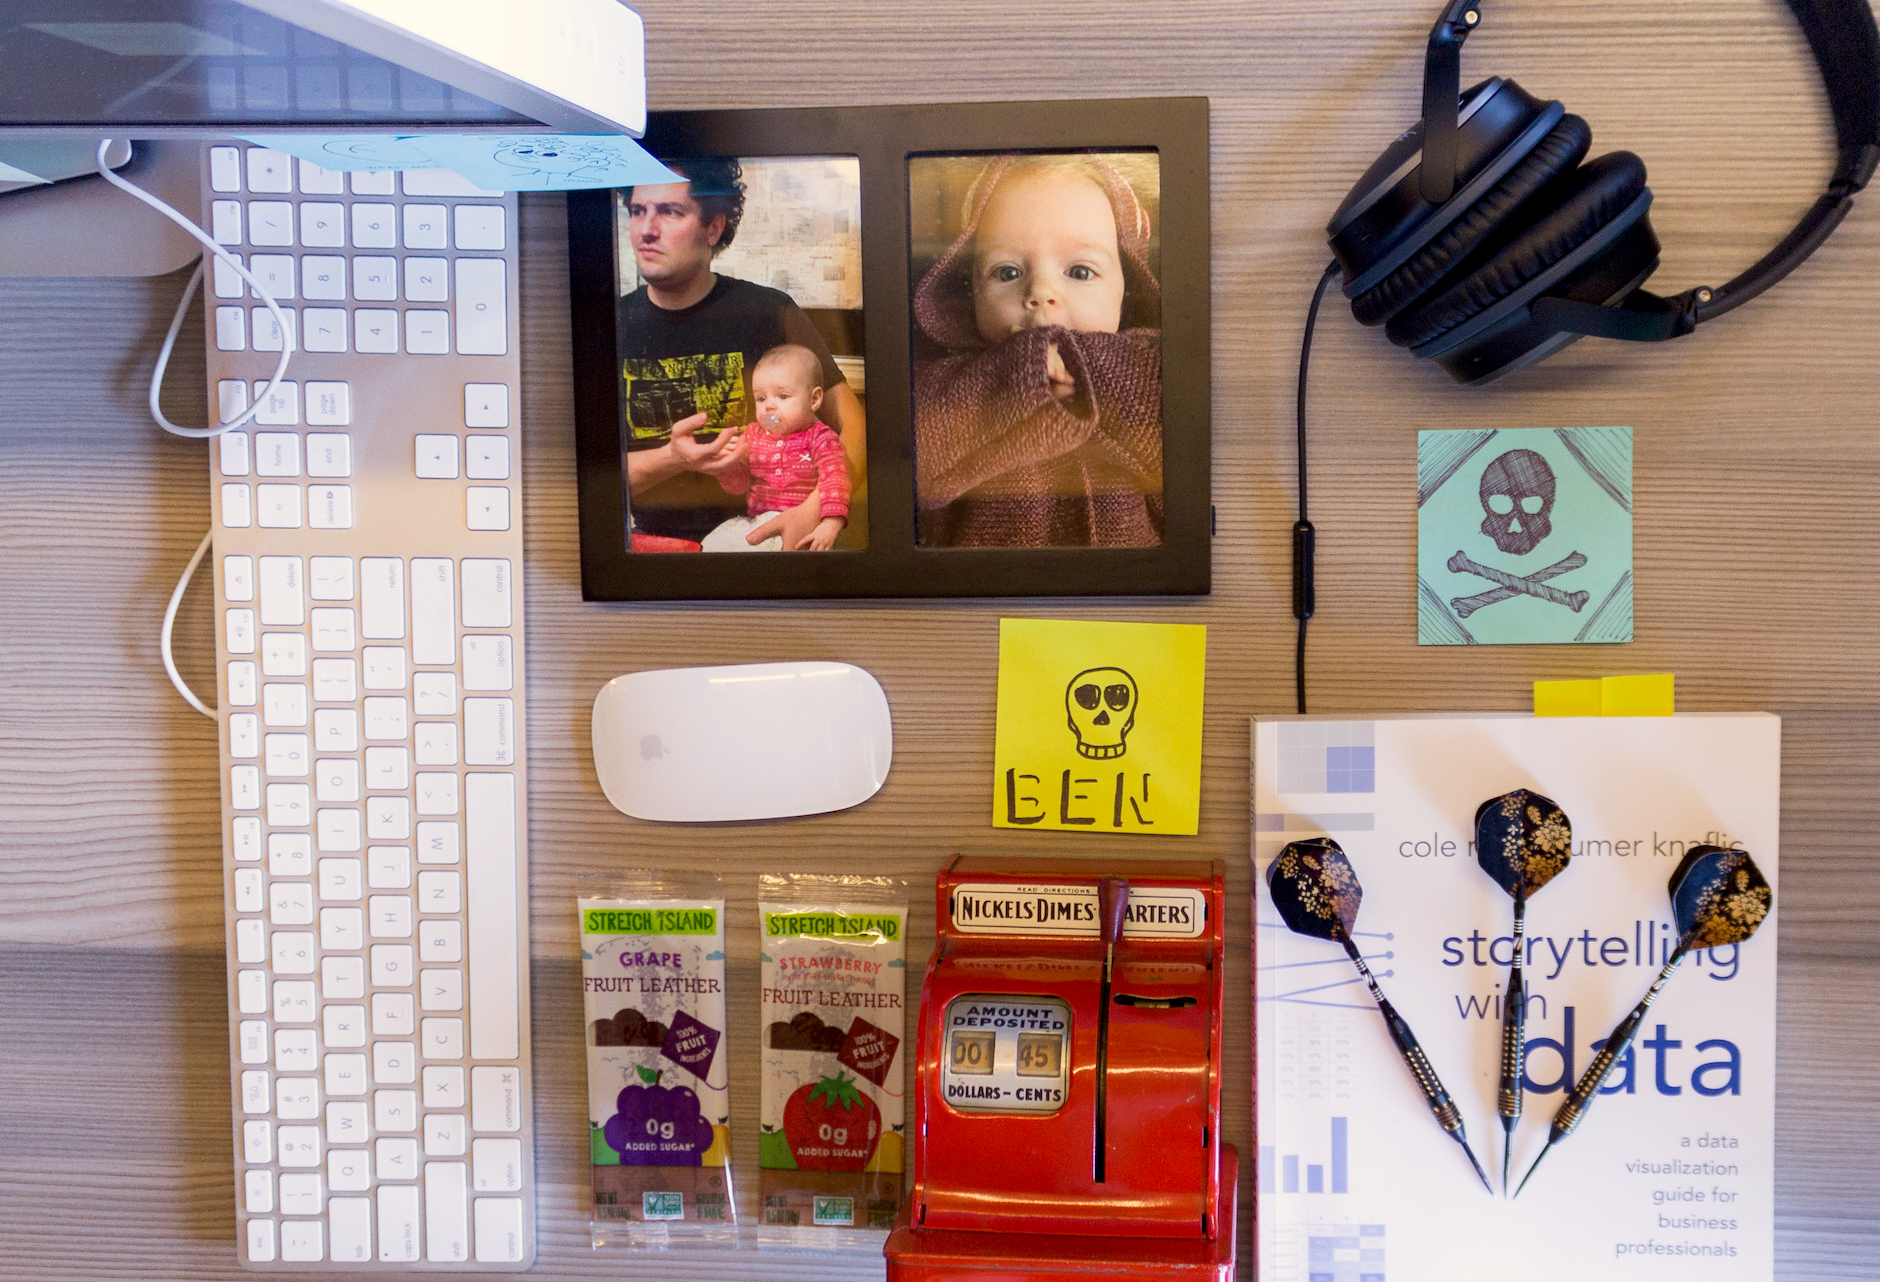 An overhead shot of Fuzzy Math co-founder Ben's desk, including framed photos of his two daughters, headphones, darts, and a sticky note with a skull and crossbones doodle.